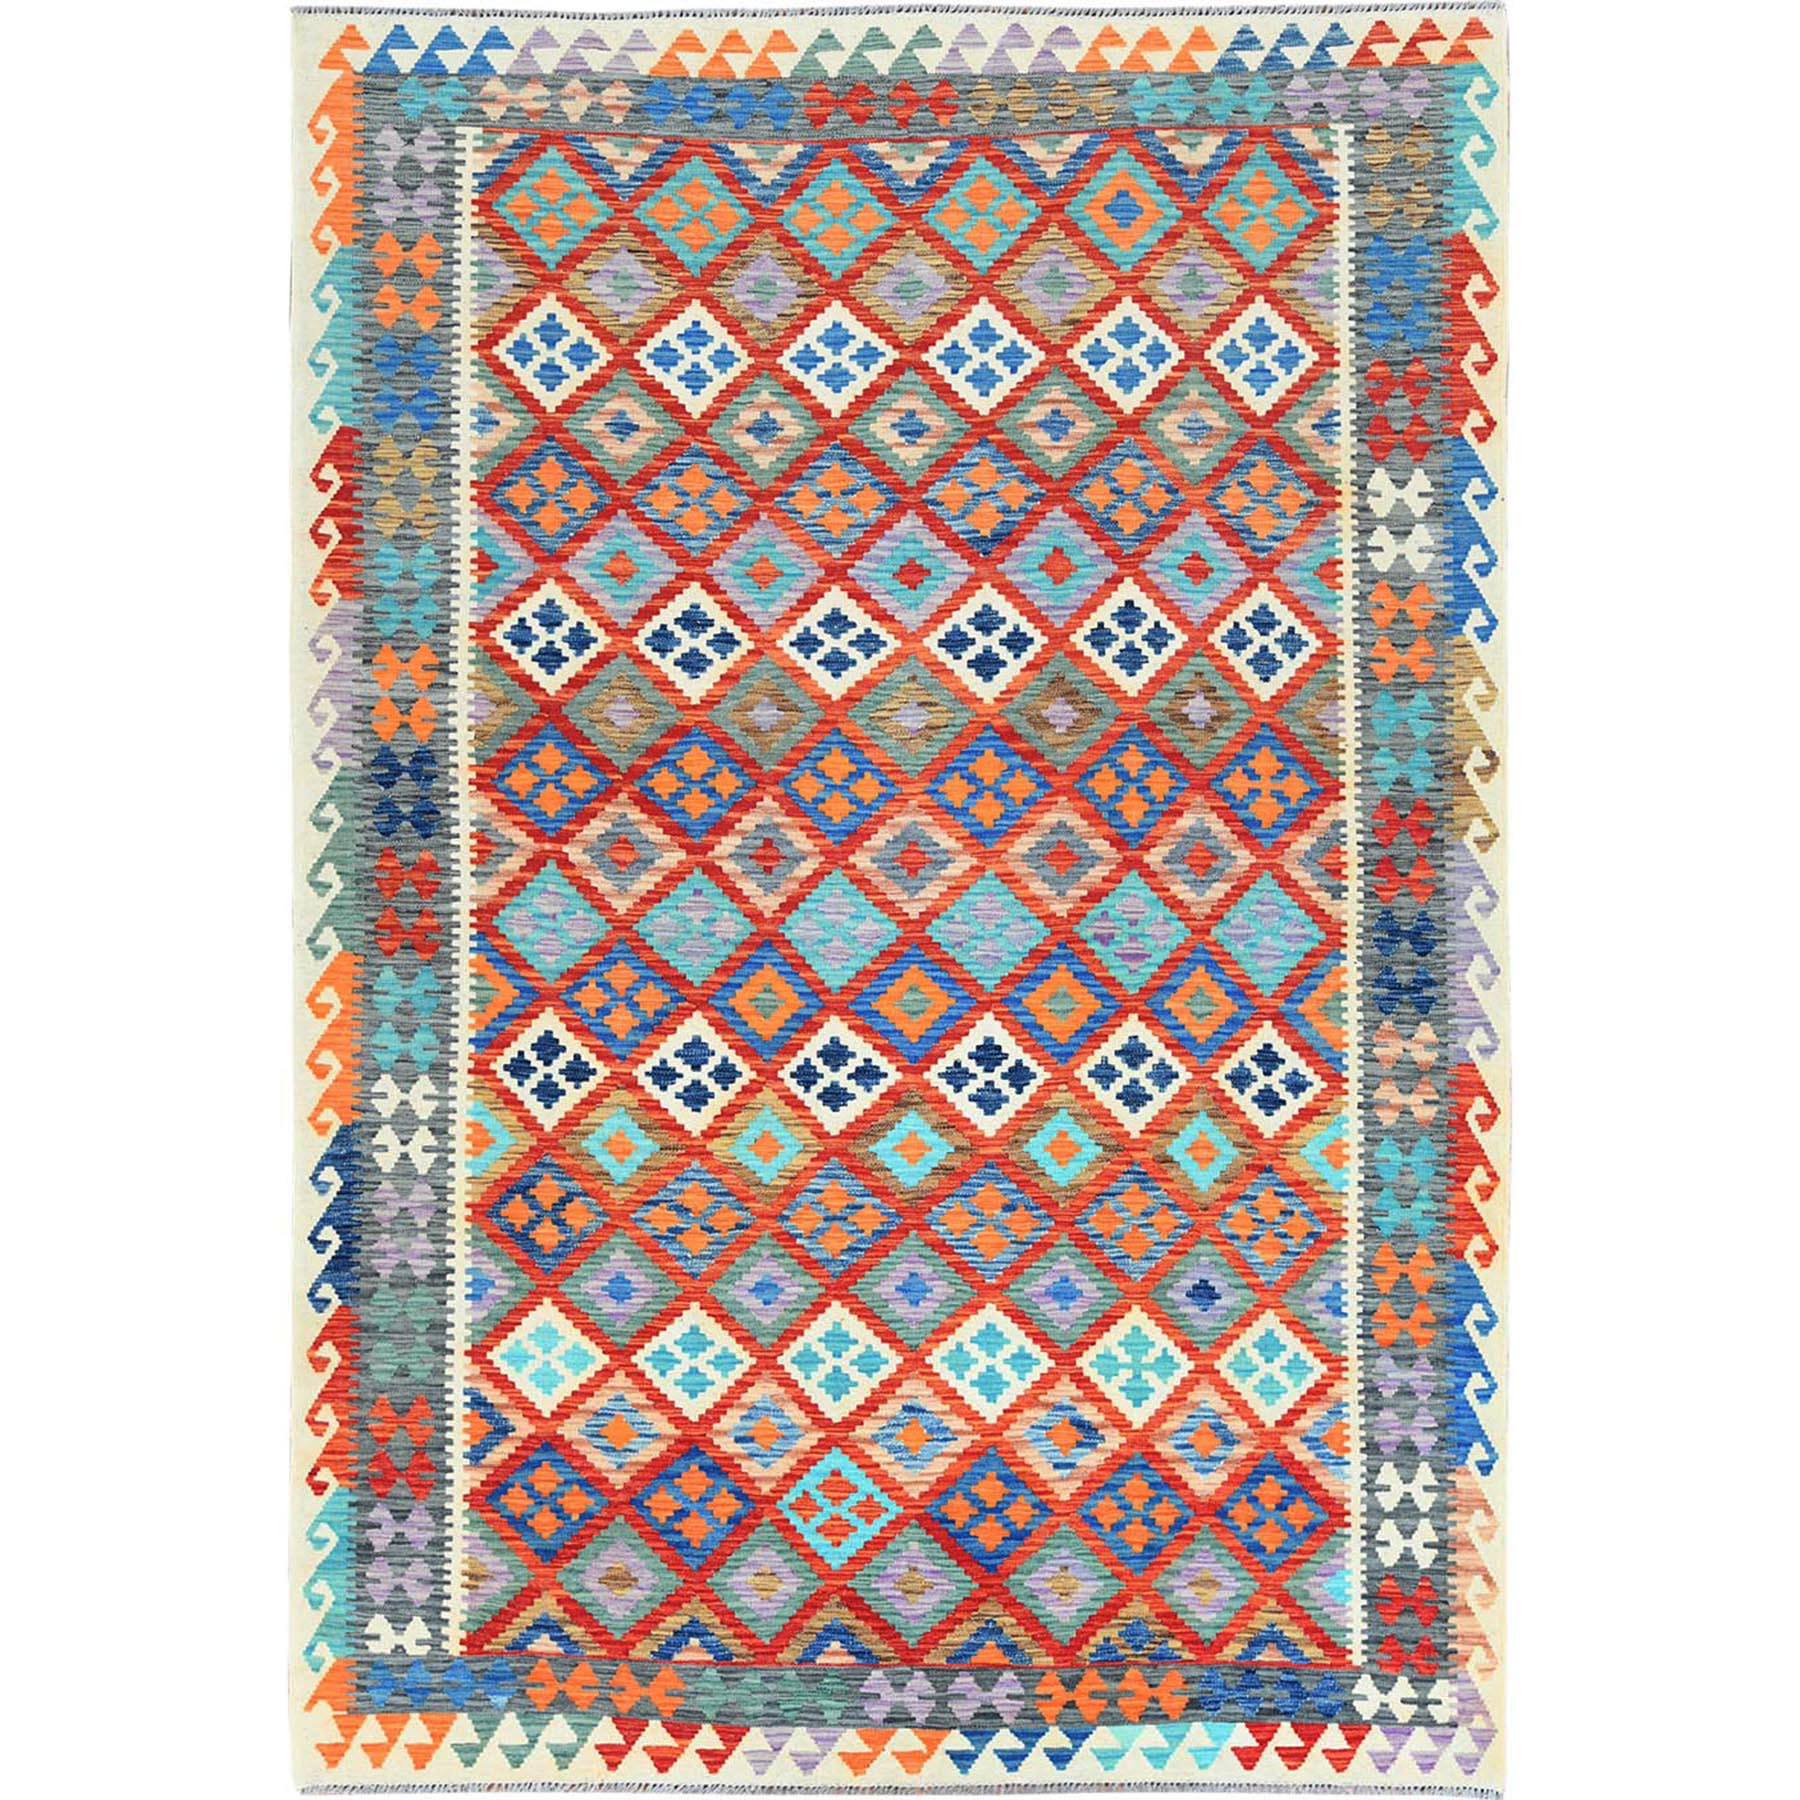 "6'8""x9'9"" Colorful Flat Weave Geometric Design Afghan Kilim Reversible Natural Wool Hand Woven Oriental Rug"